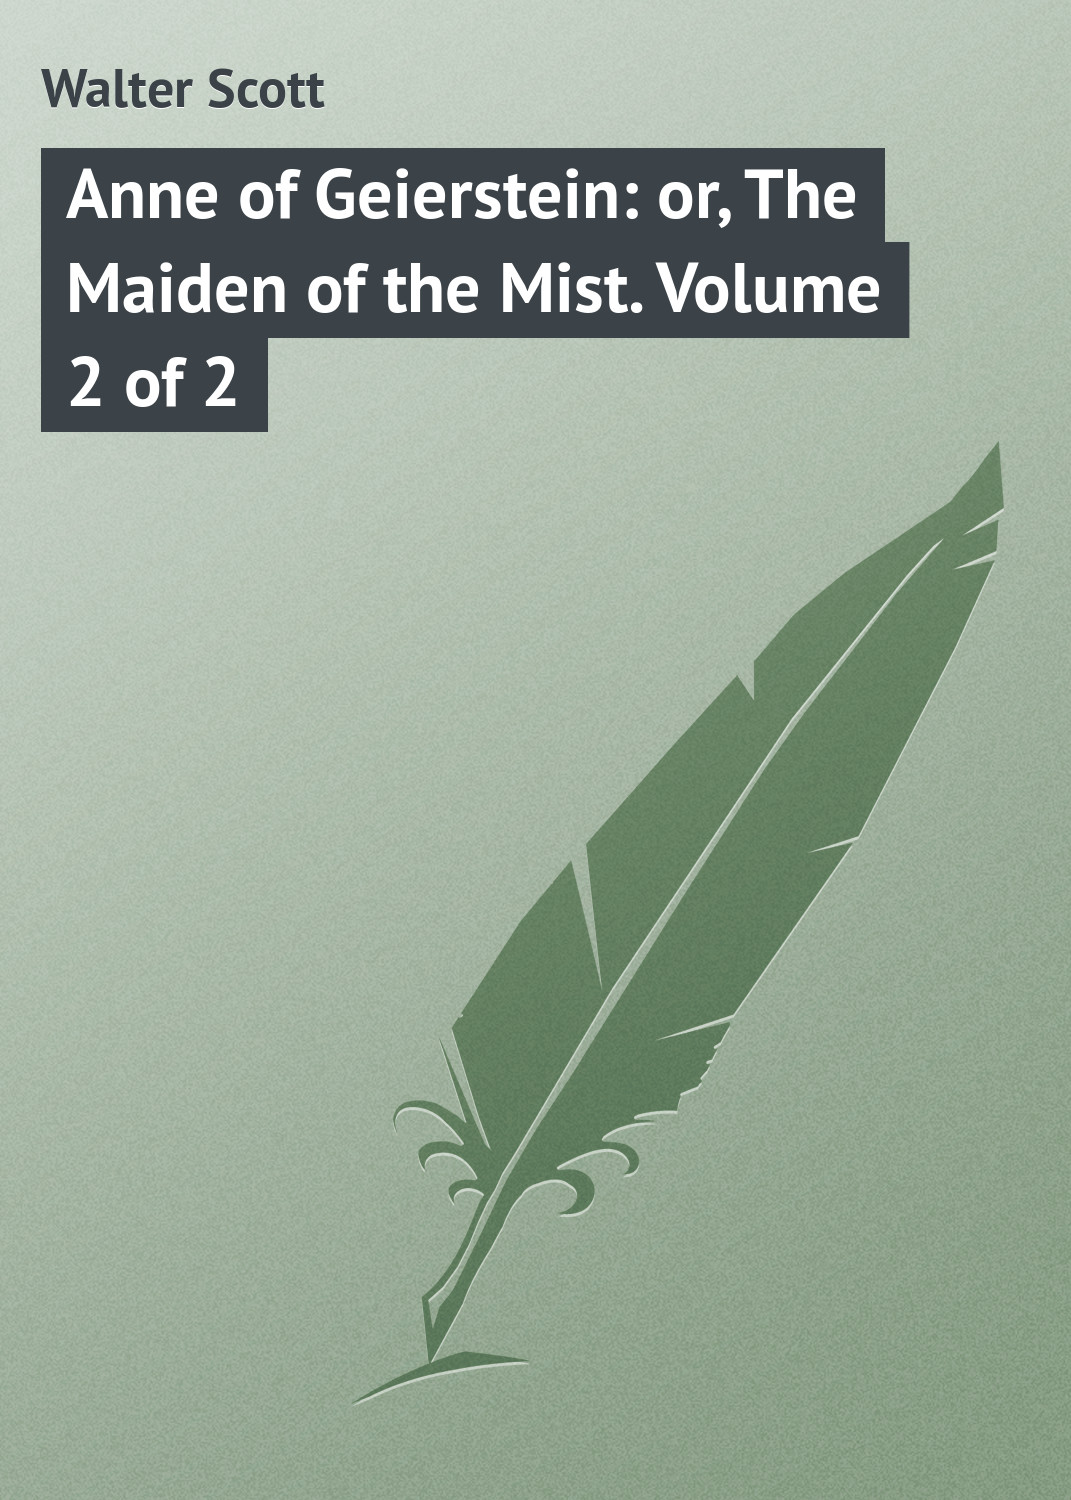 Walter Scott Anne of Geierstein: or, The Maiden of the Mist. Volume 2 of 2 walter scott the bride of lammermoor